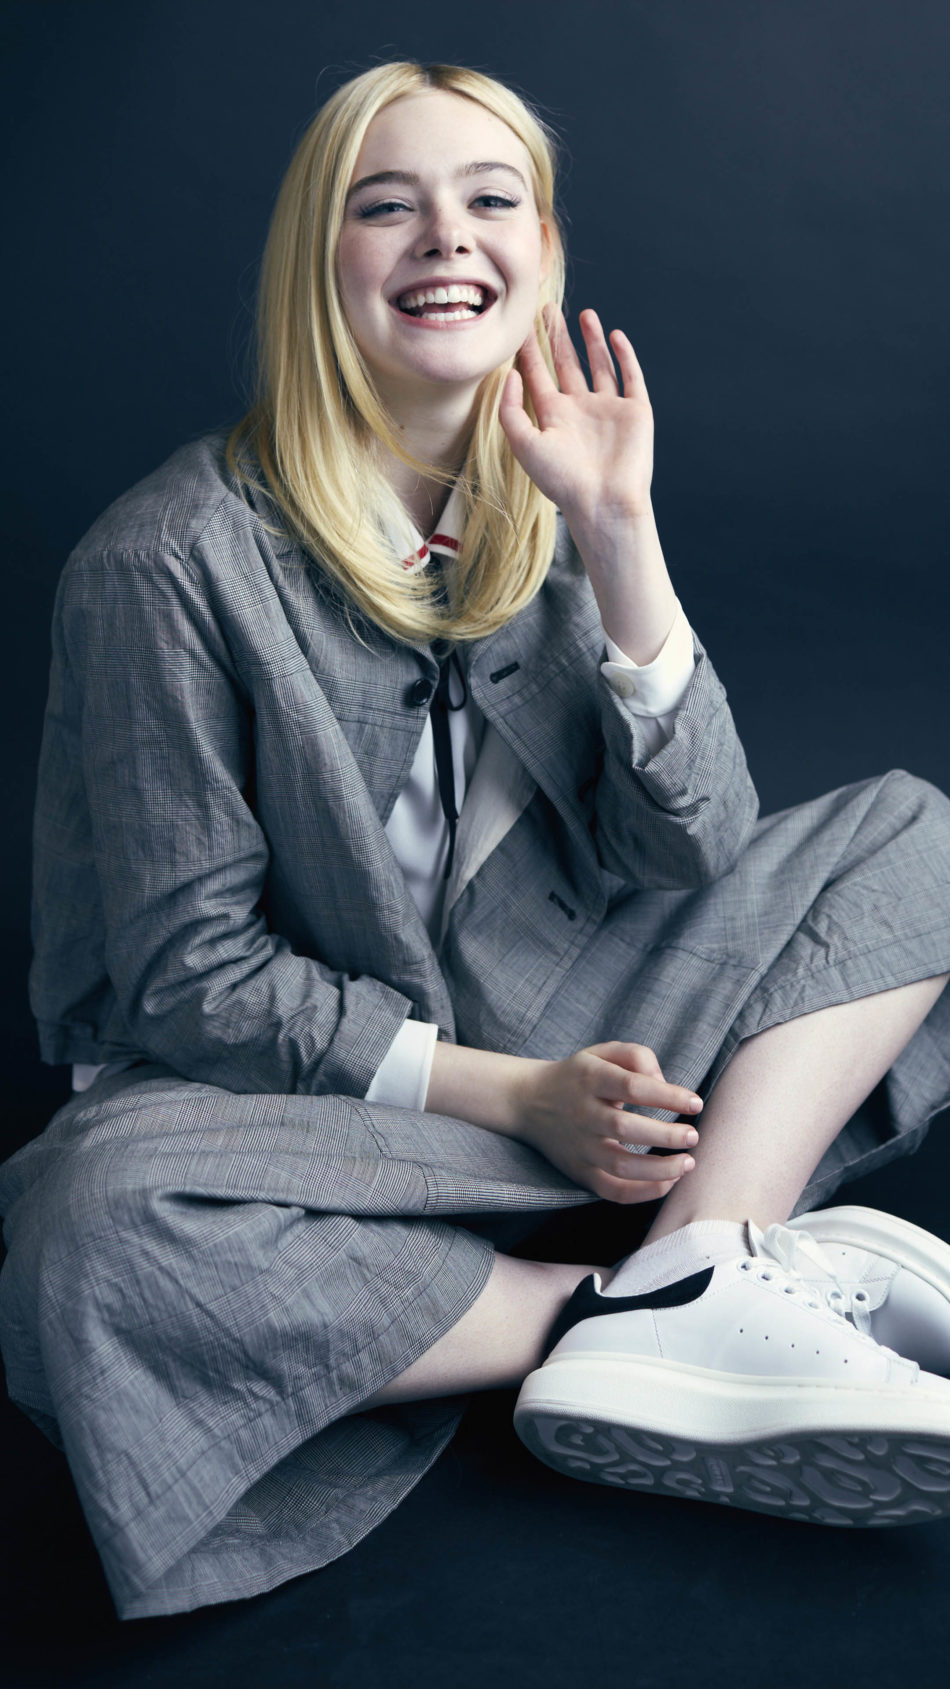 Elle Fanning Cute Smile 4K Ultra HD Mobile Wallpaper